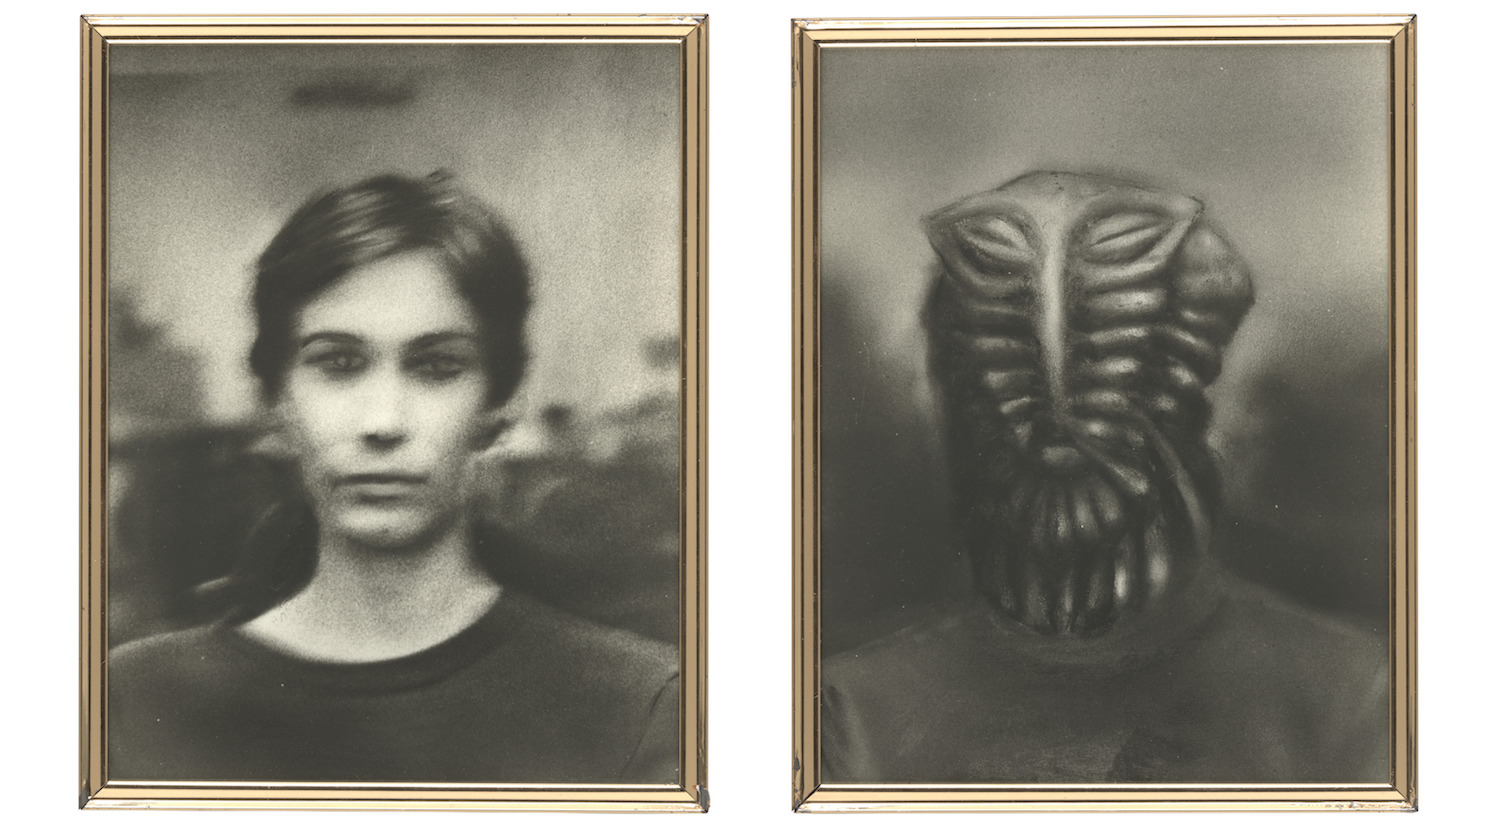 Jim Shaw, Martian Portraits, 1978. © Jim Shaw. Courtesy of the artist and Blum & Poe, Los Angeles/New York/Tokyo